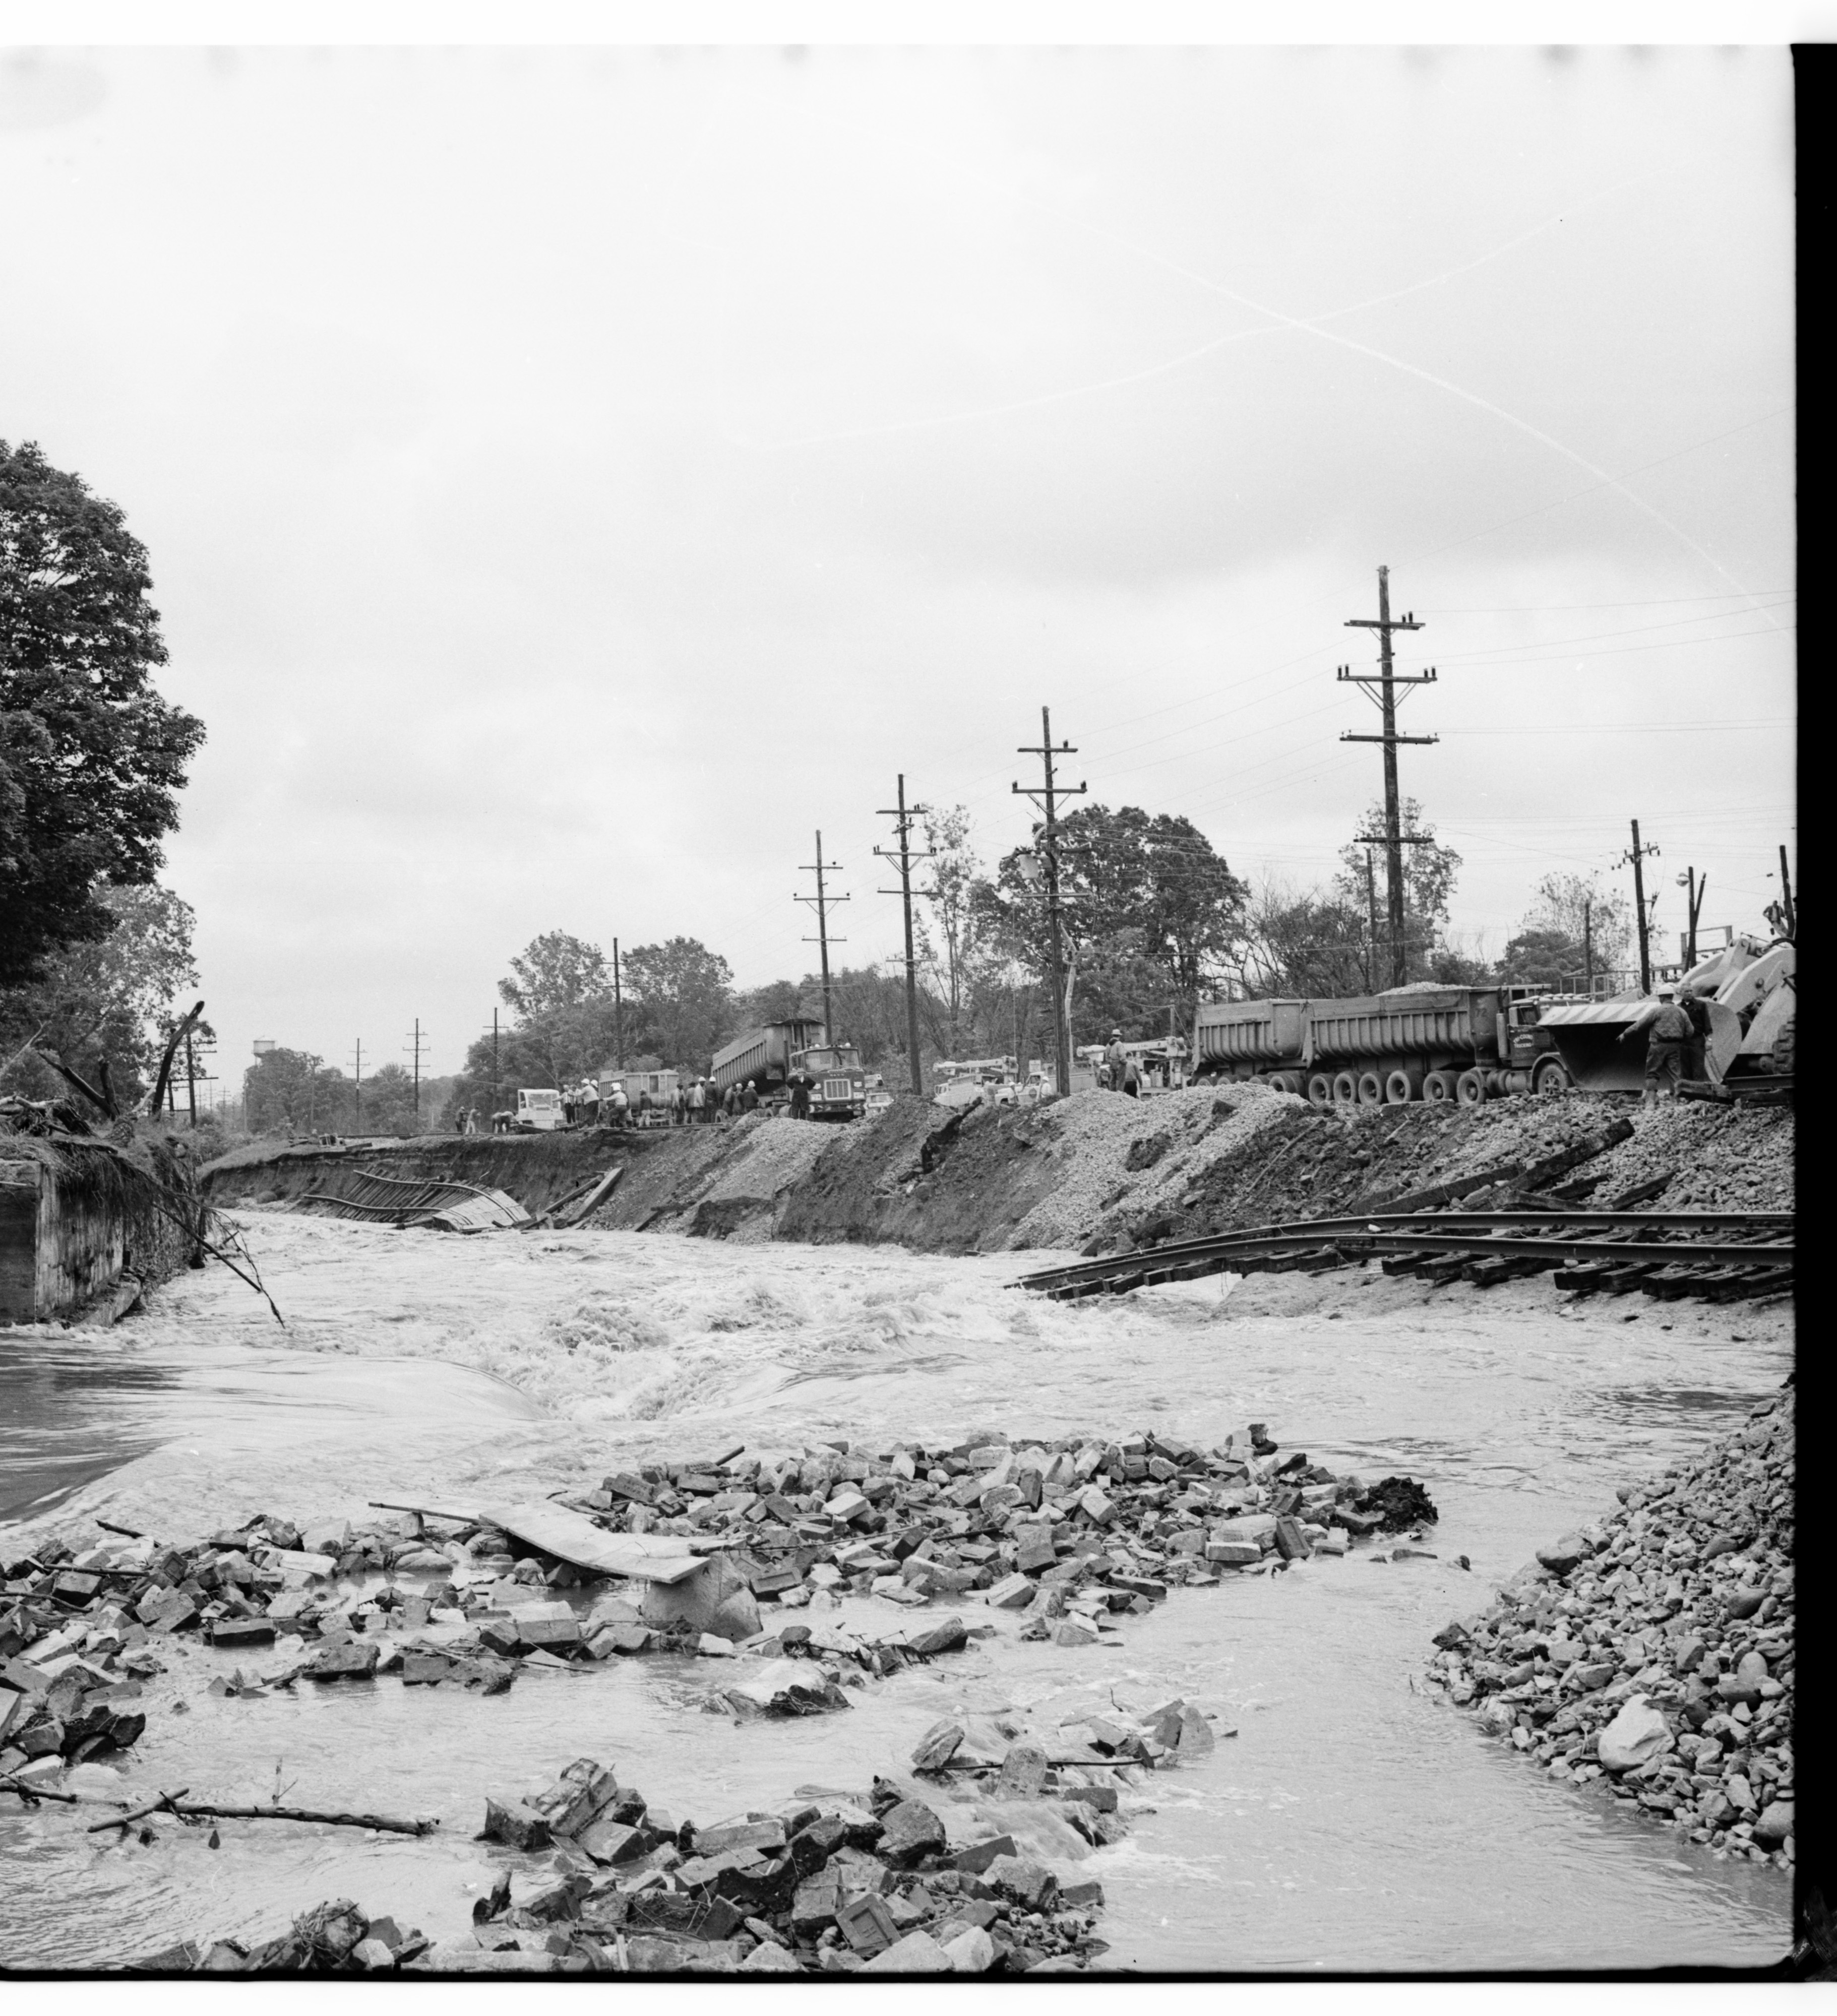 Repairing Washed Out Railroad Tracks, June 1968 Flood image